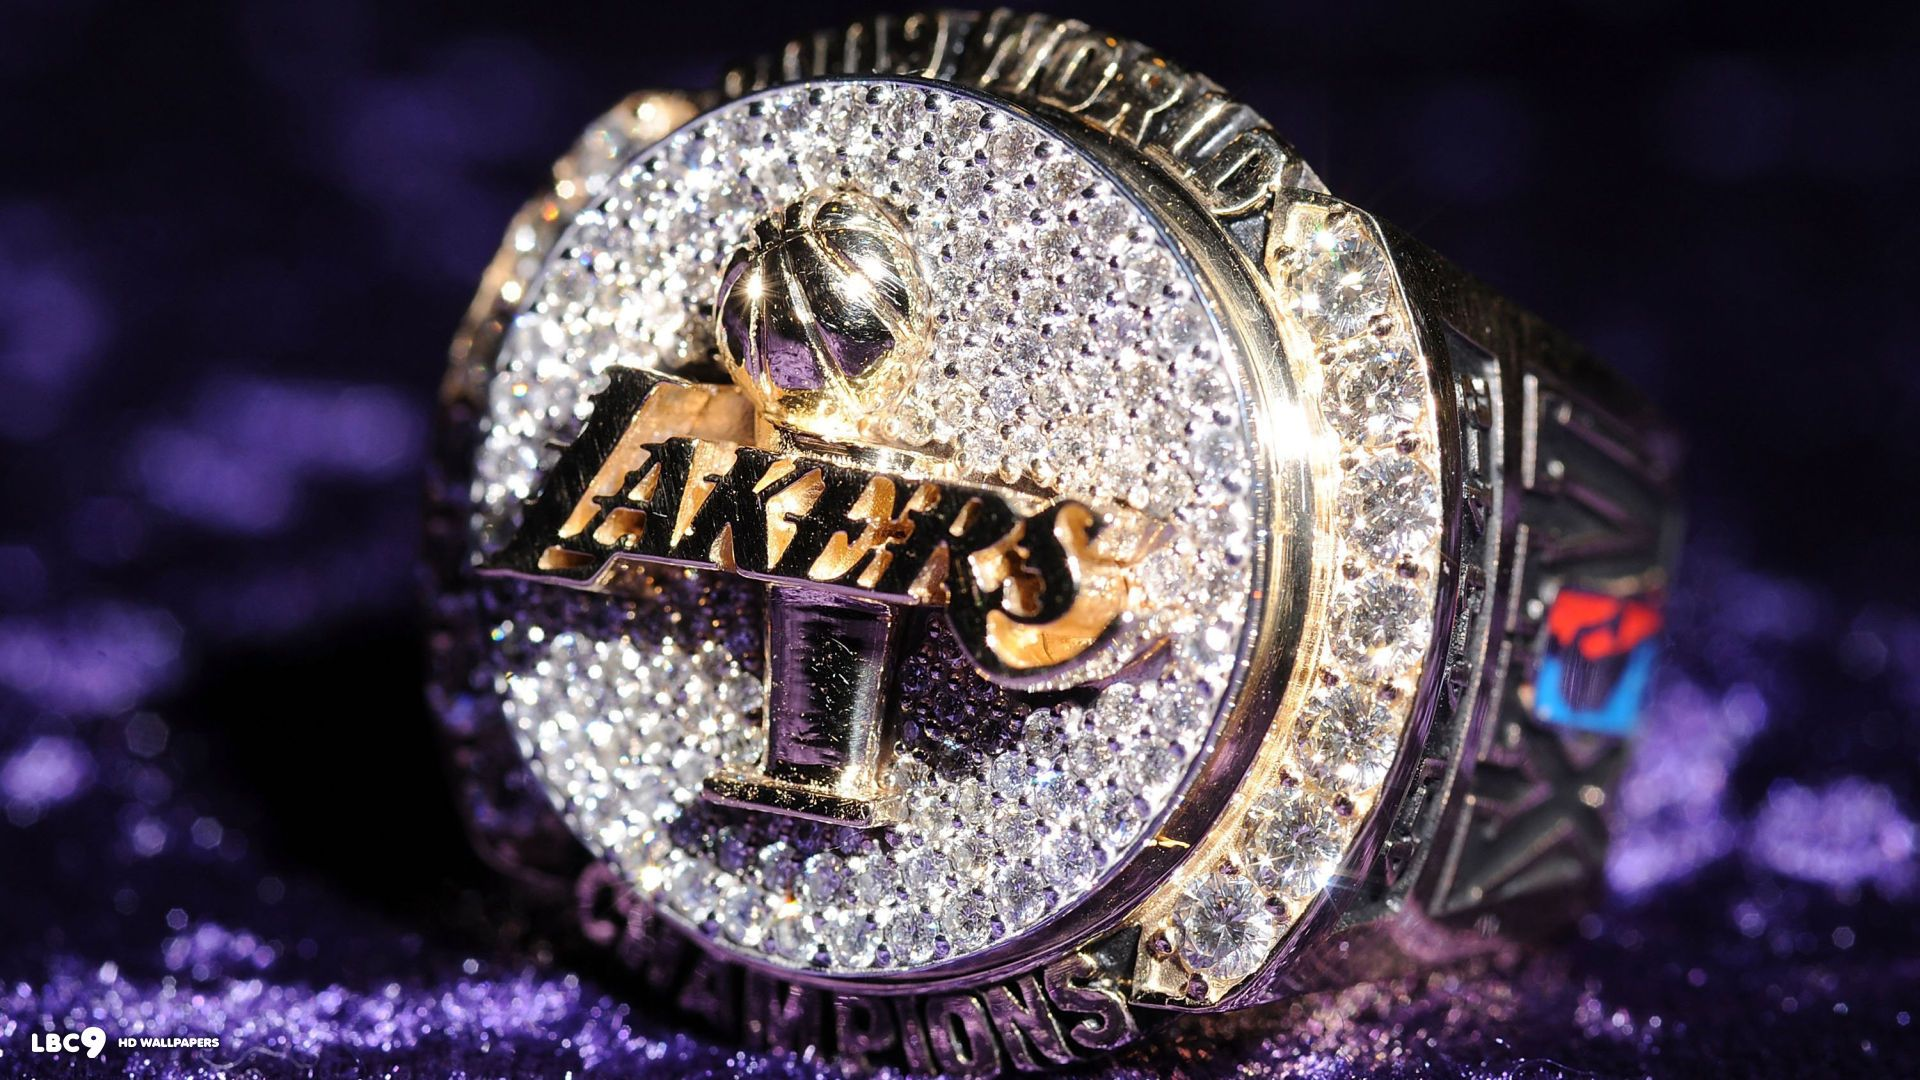 Lakers Wallpaper Logo On Shining Blue Sports 2560x1440 LA Wallpapers HD 42